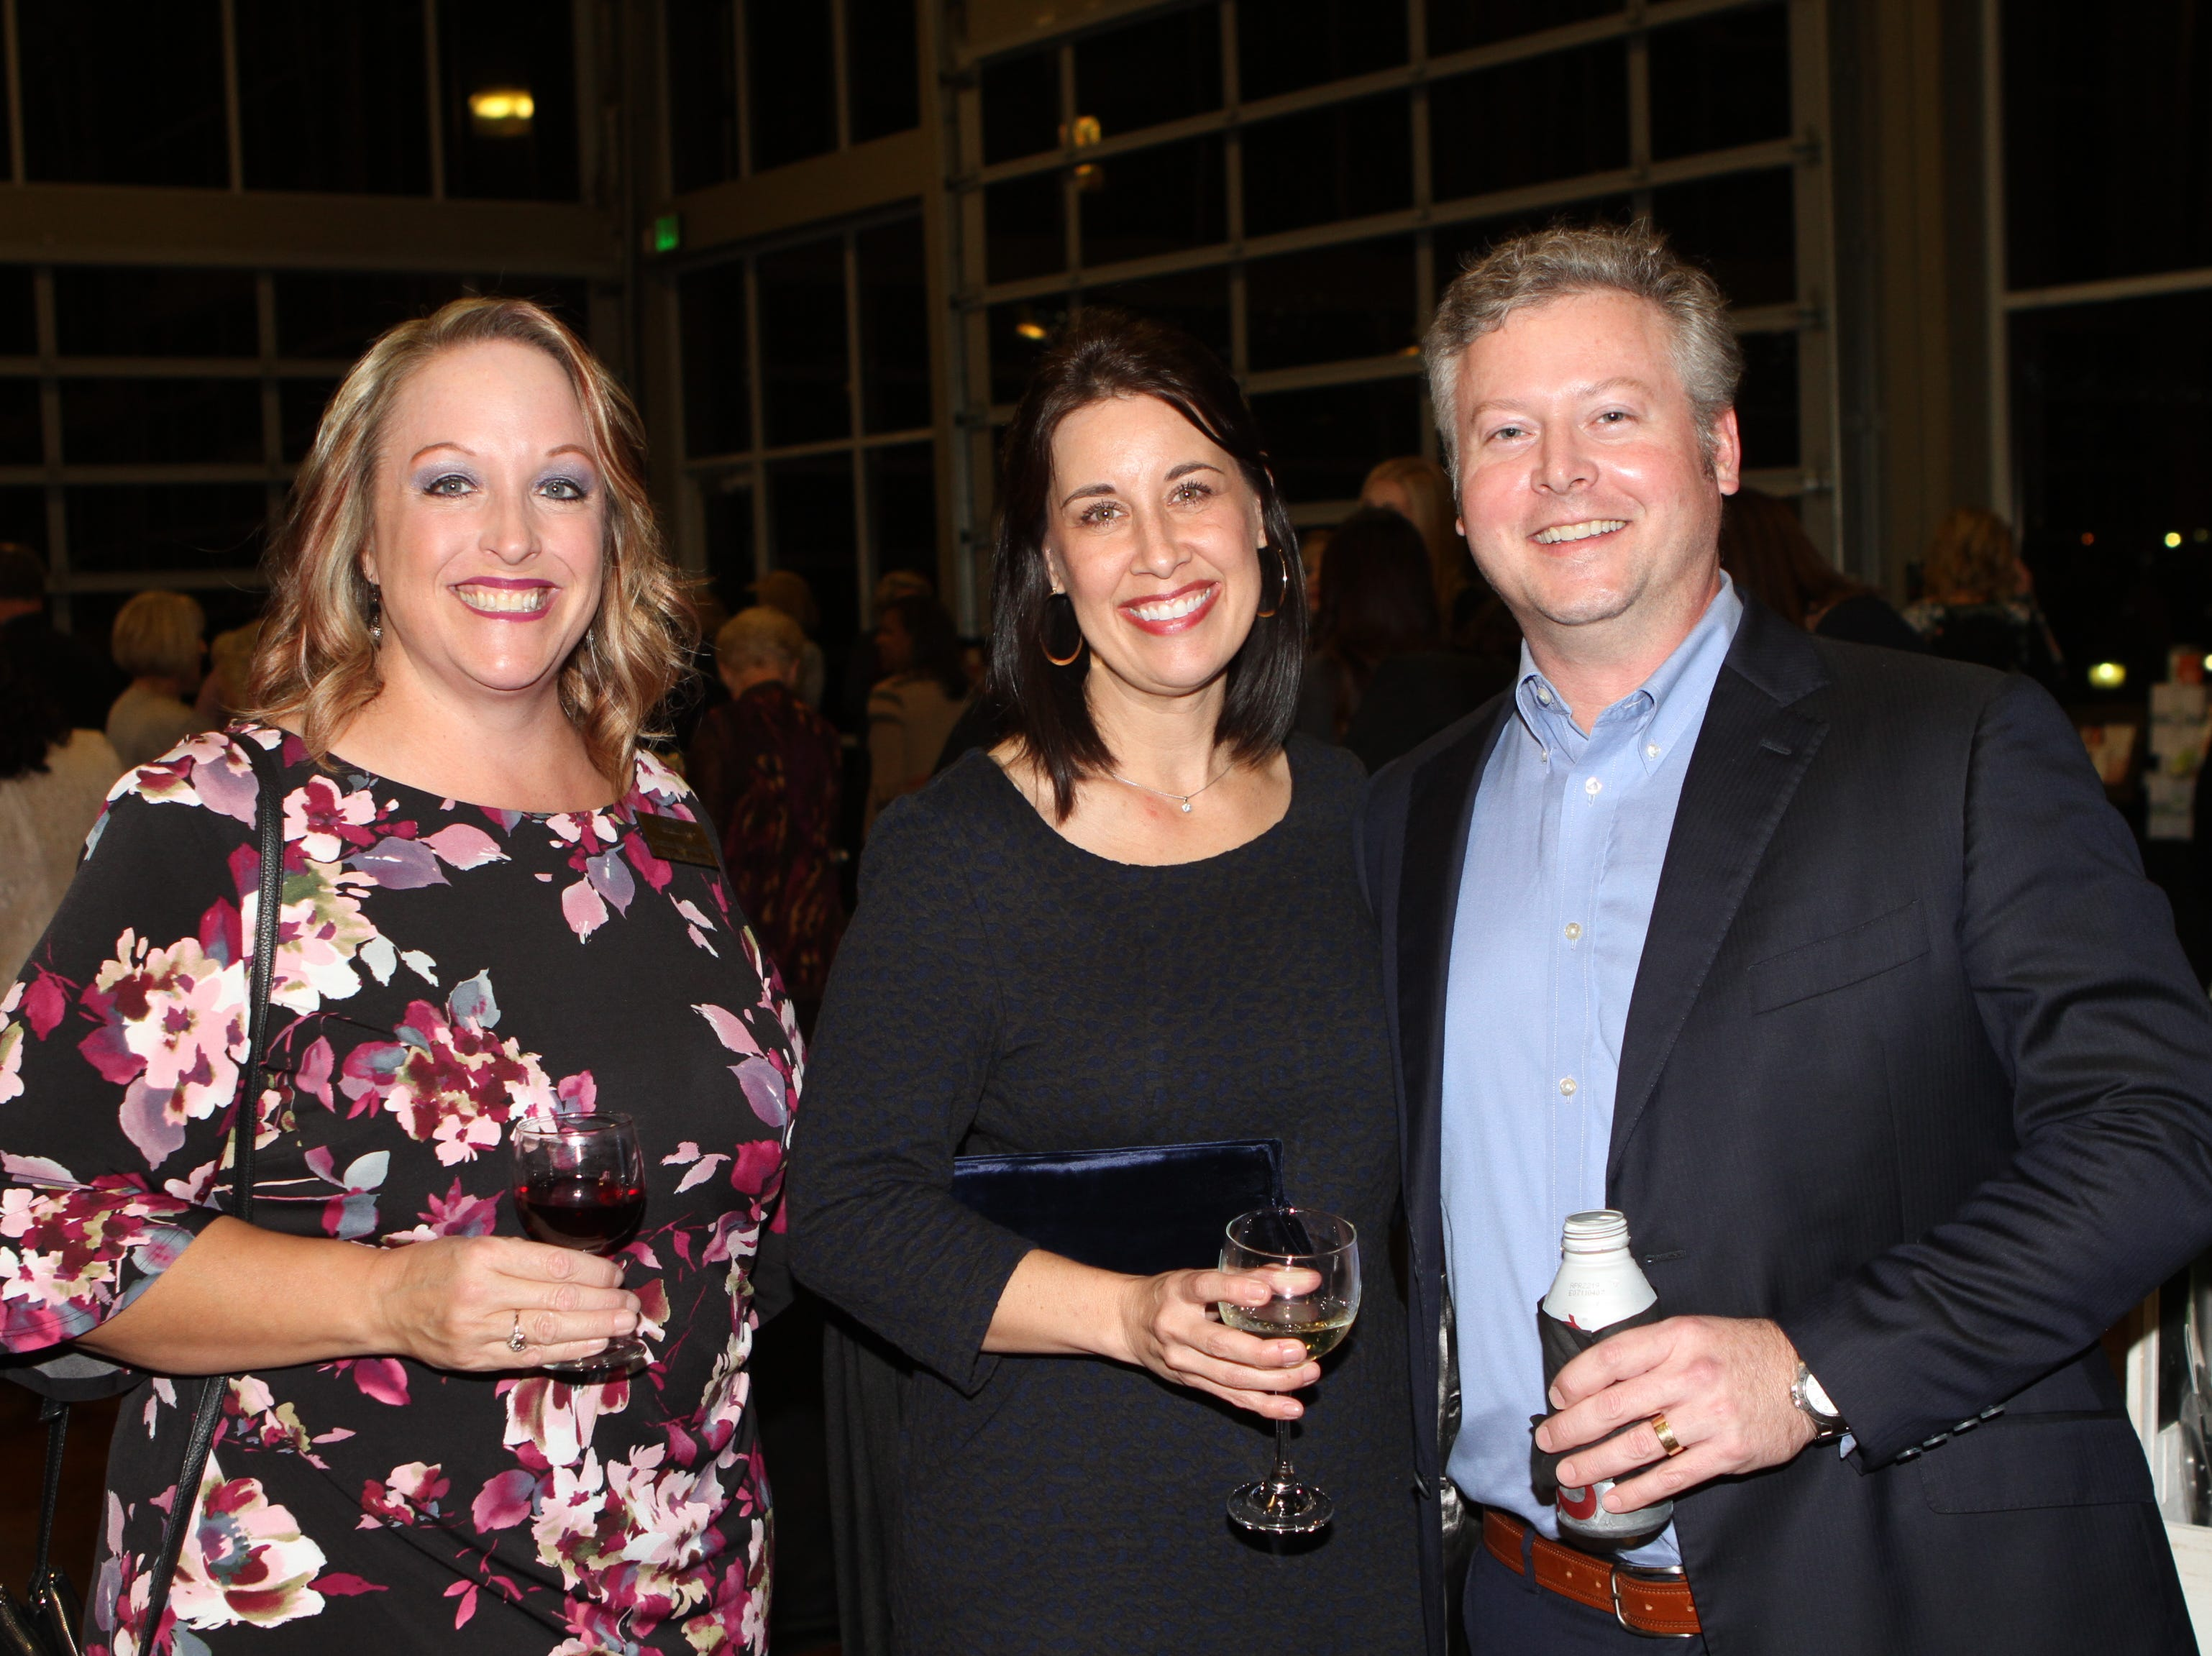 CMC Education Foundation held its annual fundraiser Vision to Reality on Friday, November 2, 2018